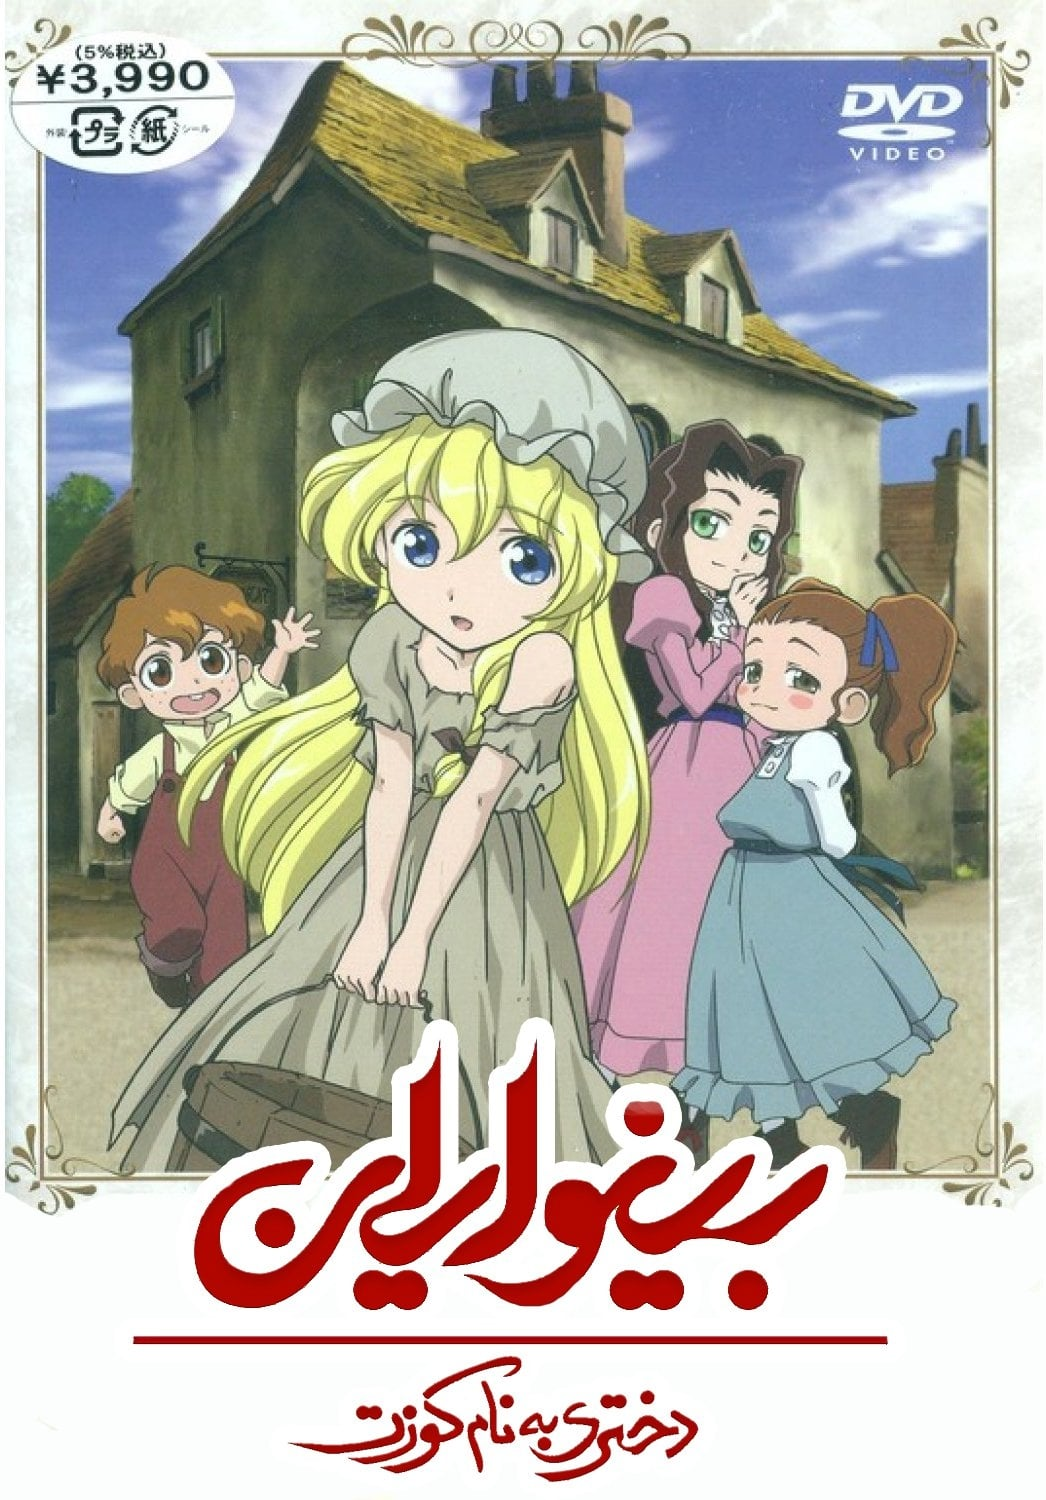 Les Misérables: Shoujo Cosette (2007)